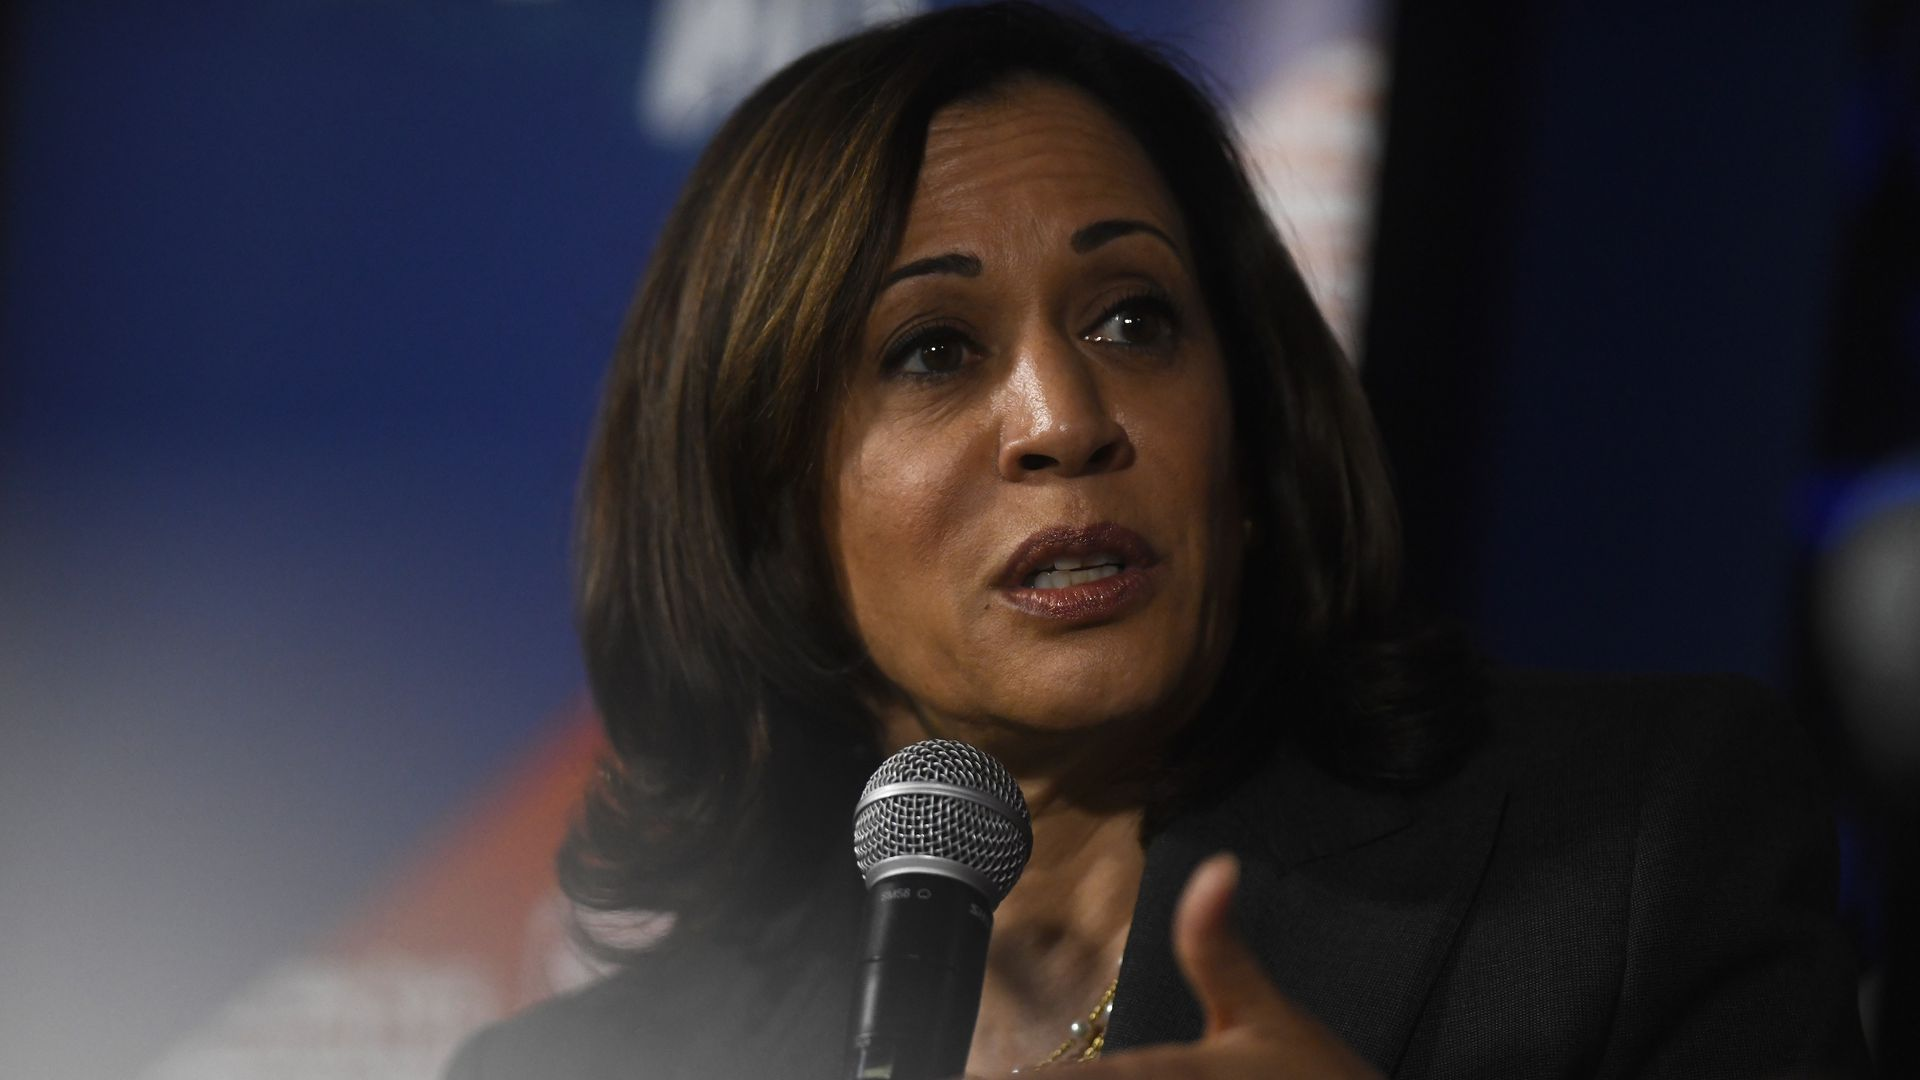 In this image, Kamala Harris speaks into a microphone while wearing a blazer.